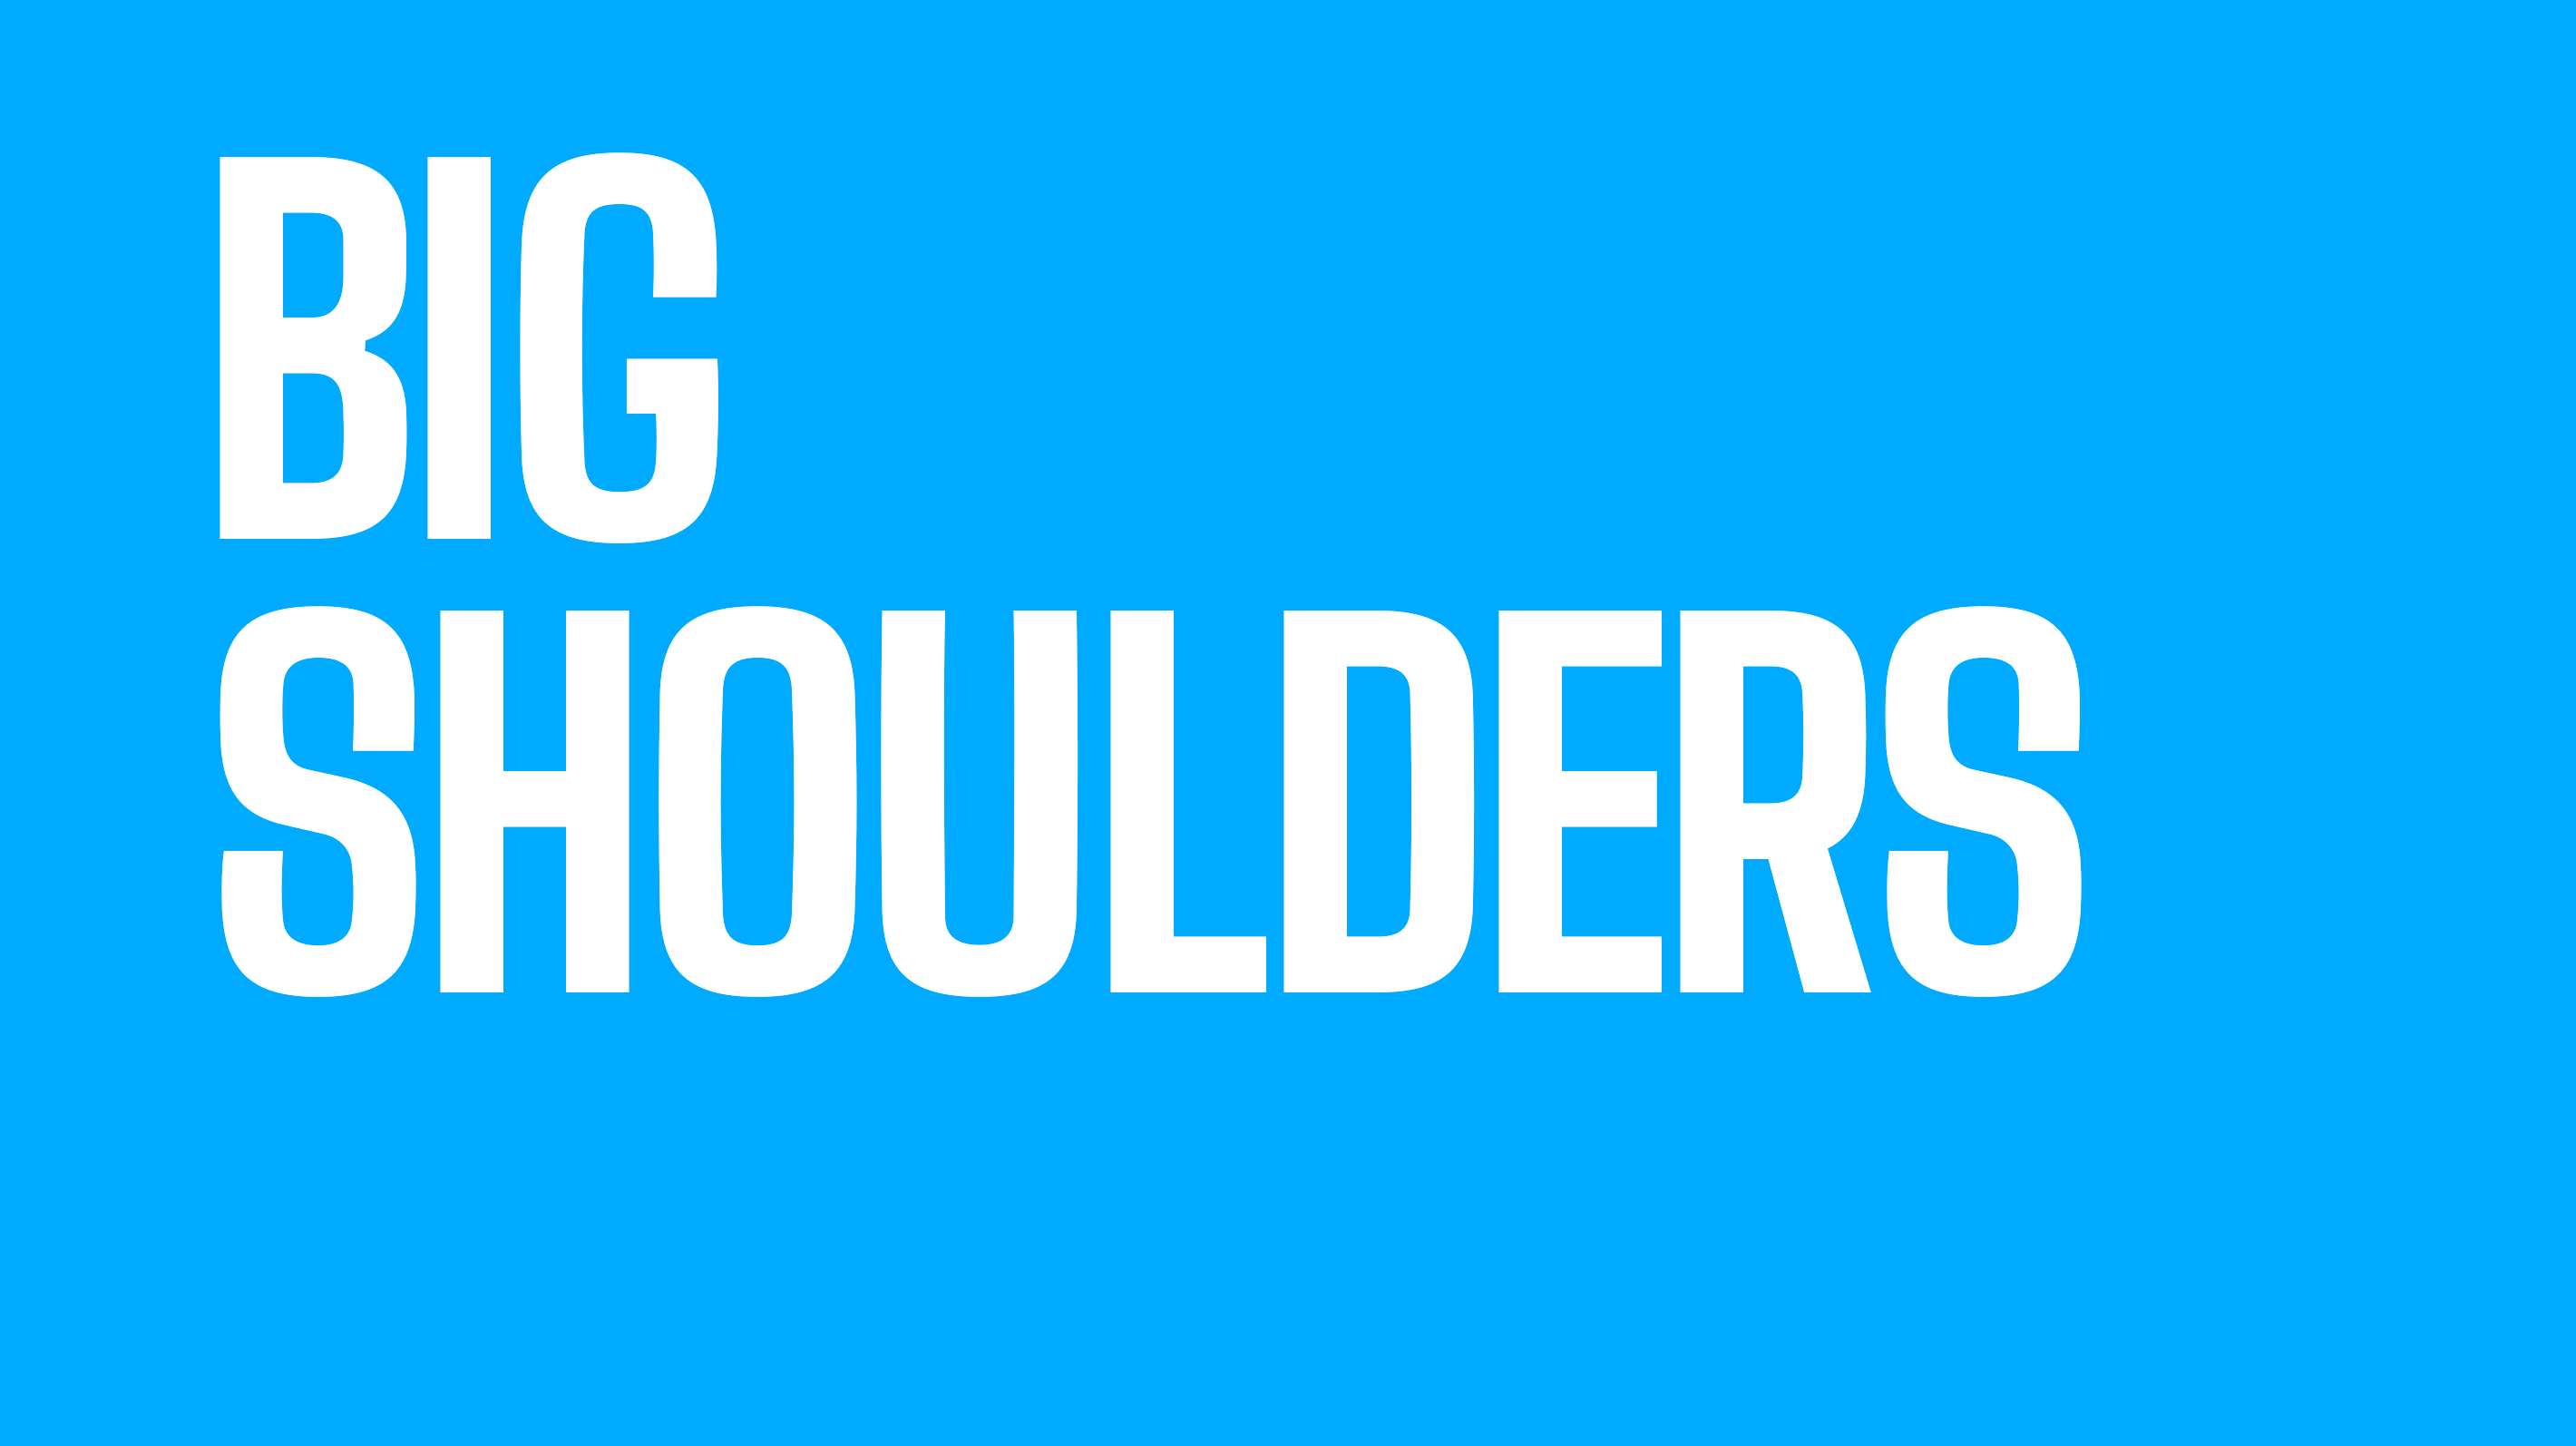 A Picture of Big Shoulders Typeface